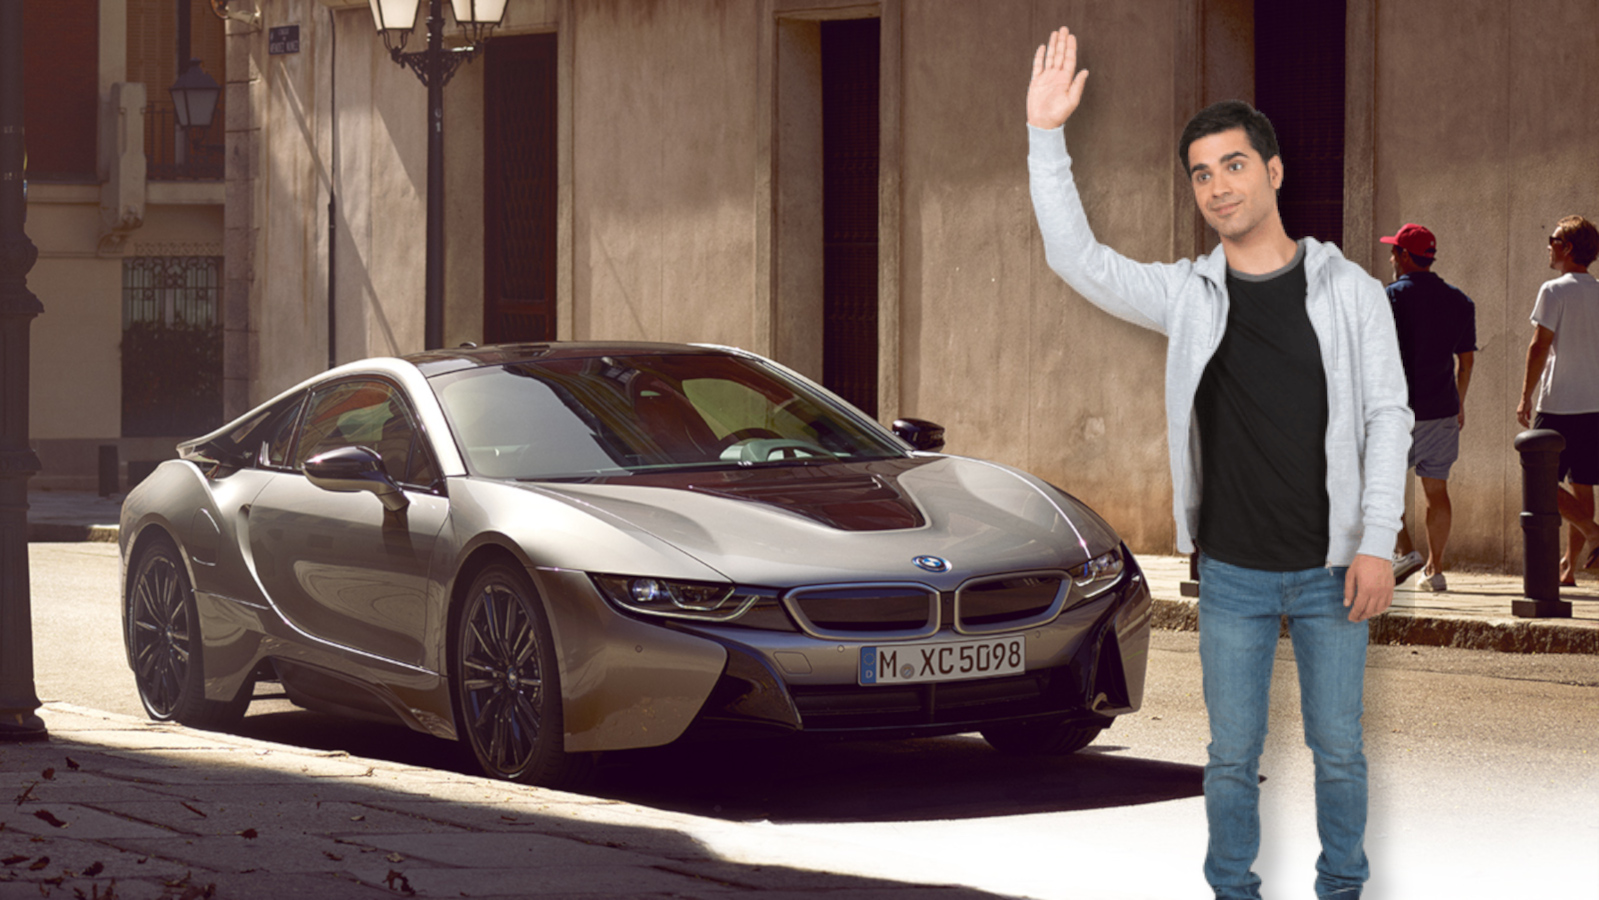 Bmw Kills Off Its I8 Hybrid Sports Car To Make Way For All Electric Models